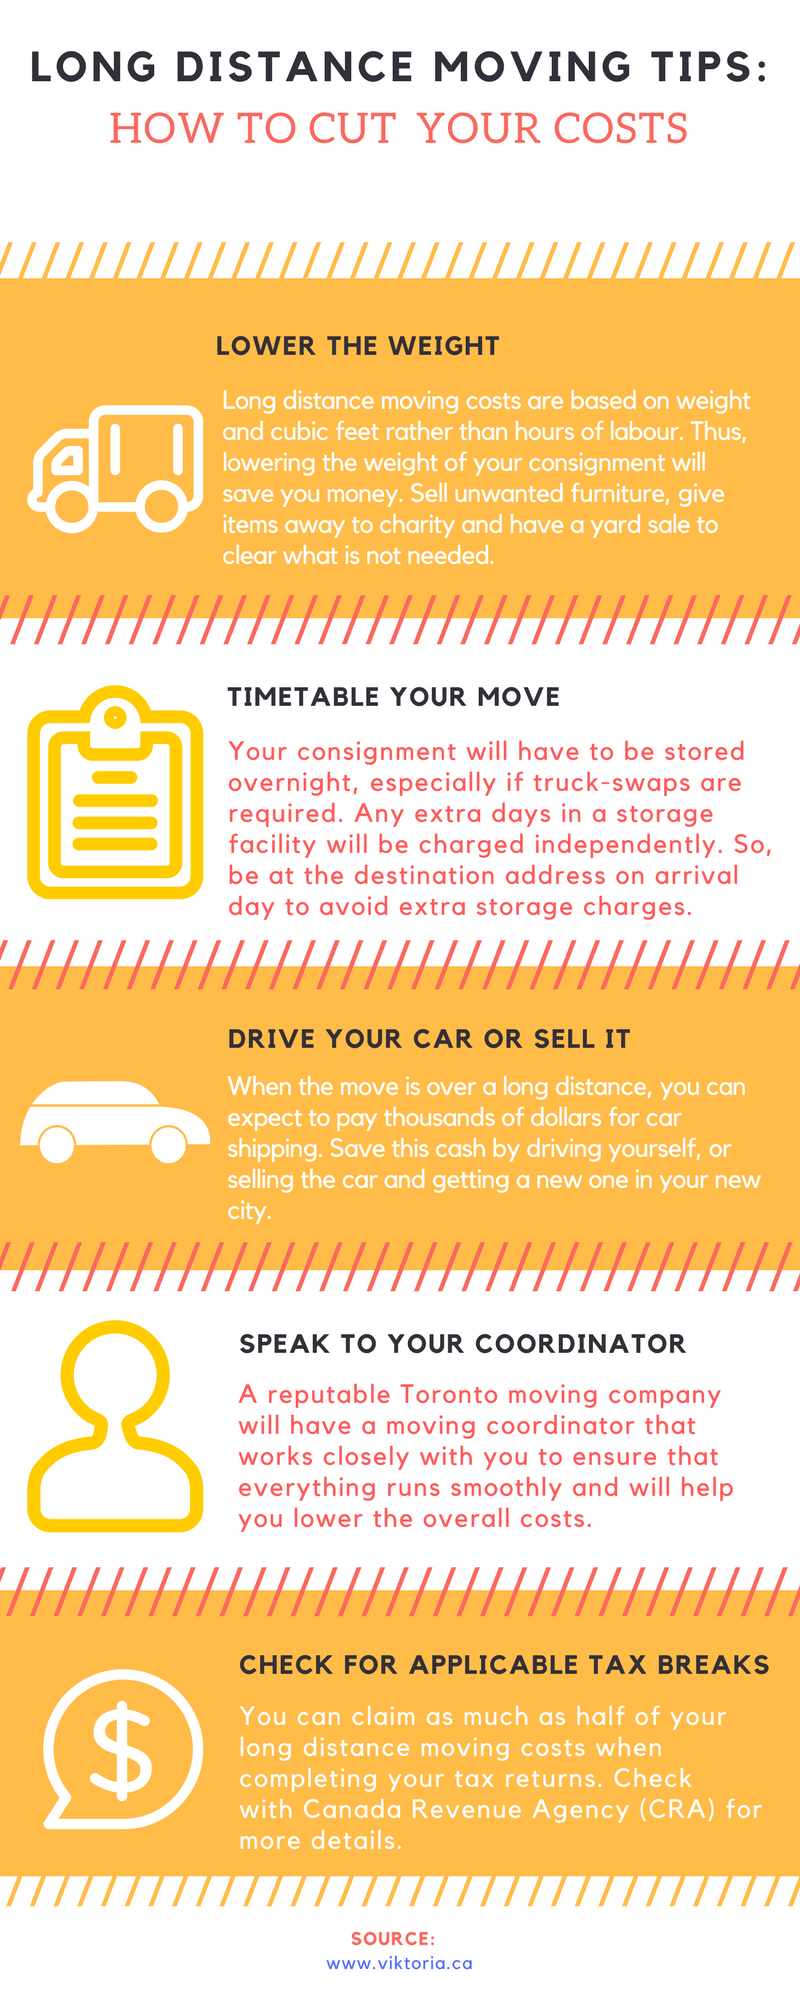 Europa Movers Toronto - Long Distance Moving Tips Infographic